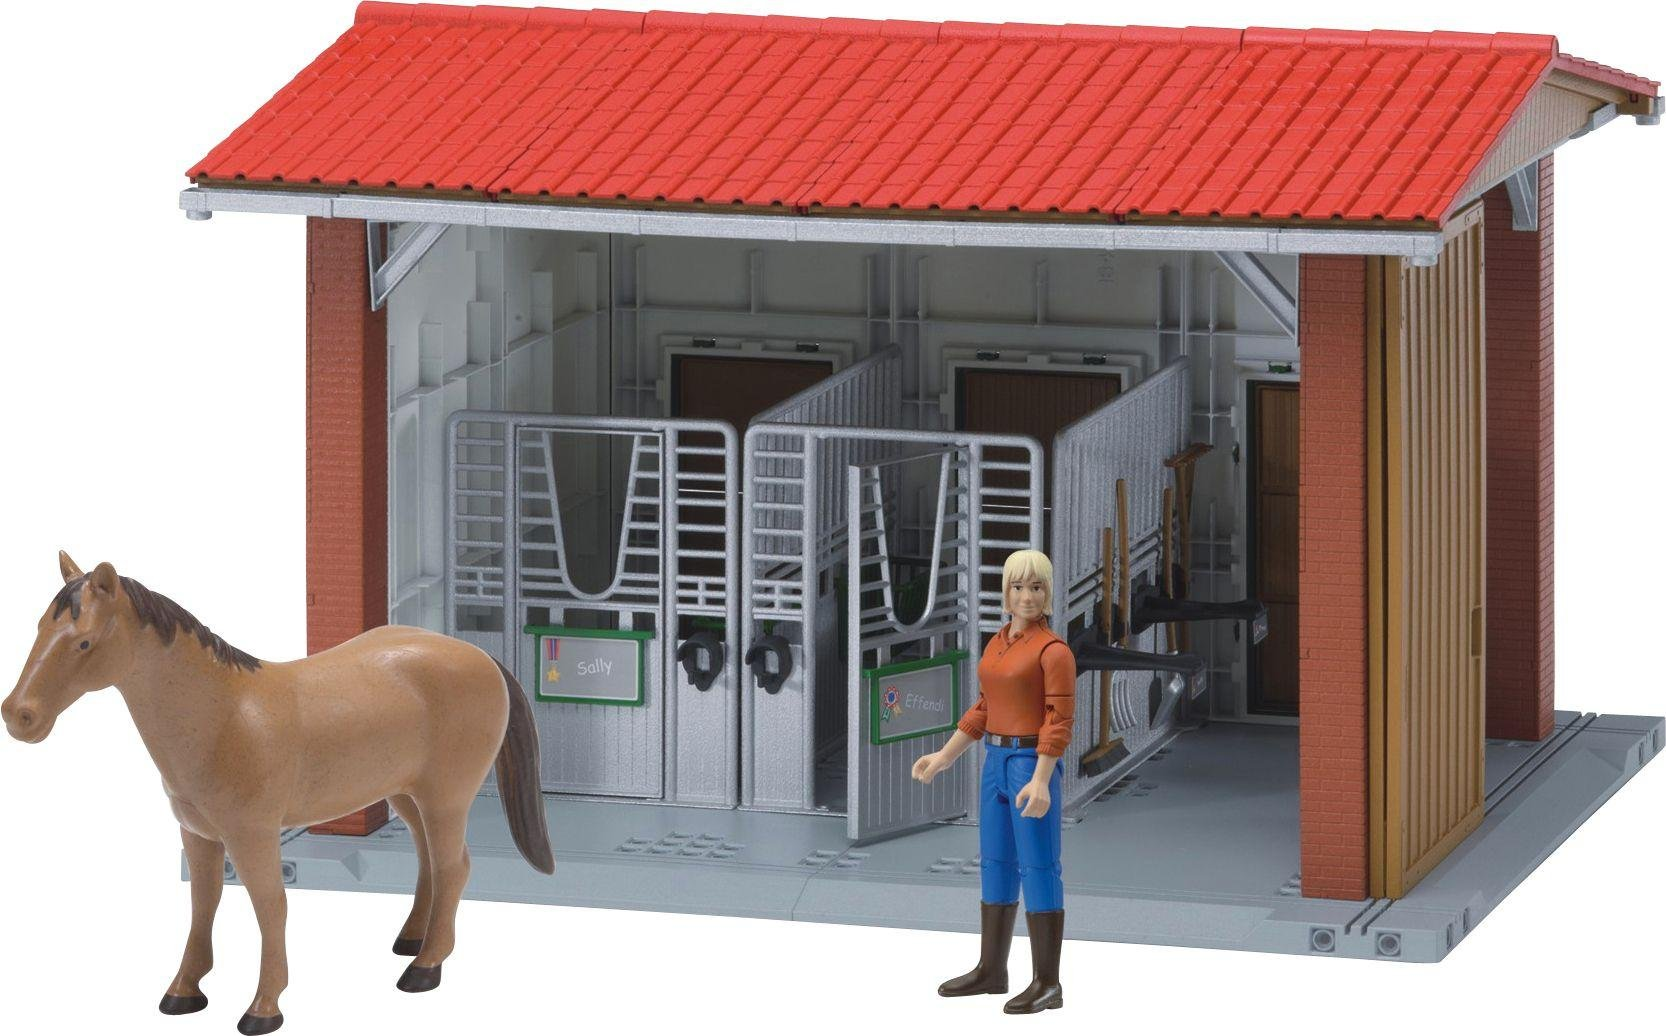 Image of Bruder 62520 BWorld Horse and Stable Playset.